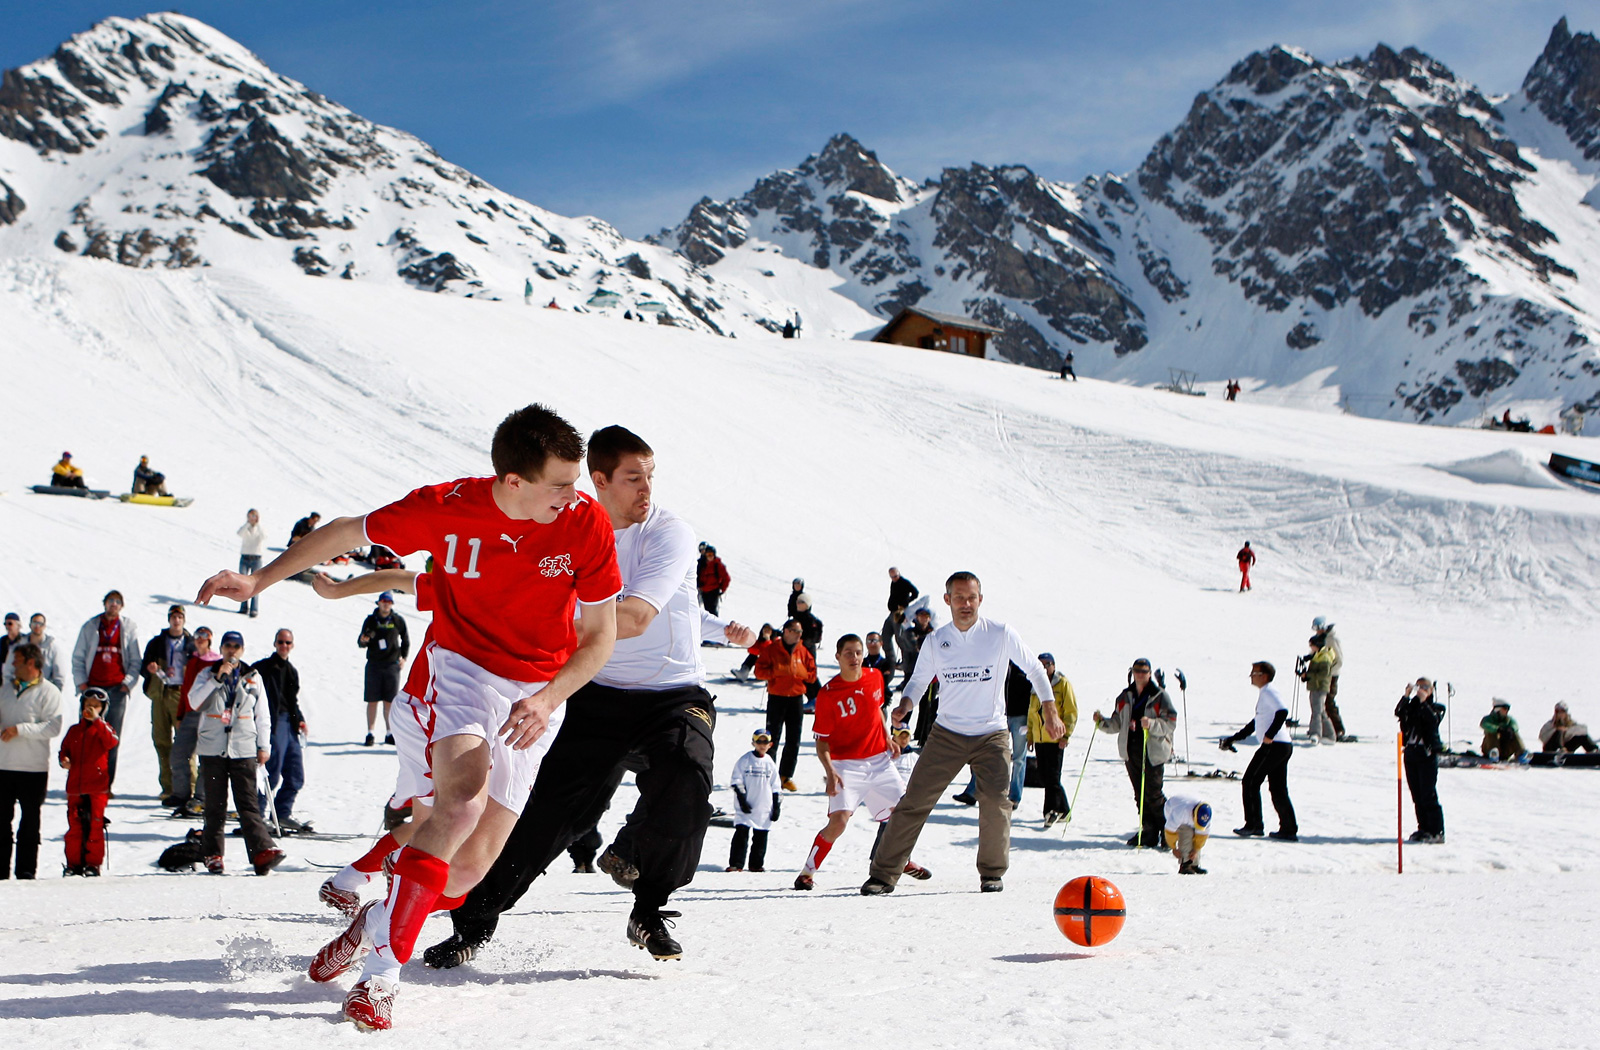 Neither snow nor altitude stopped these players in the Alps in Verbier, Switzerland in 2008.